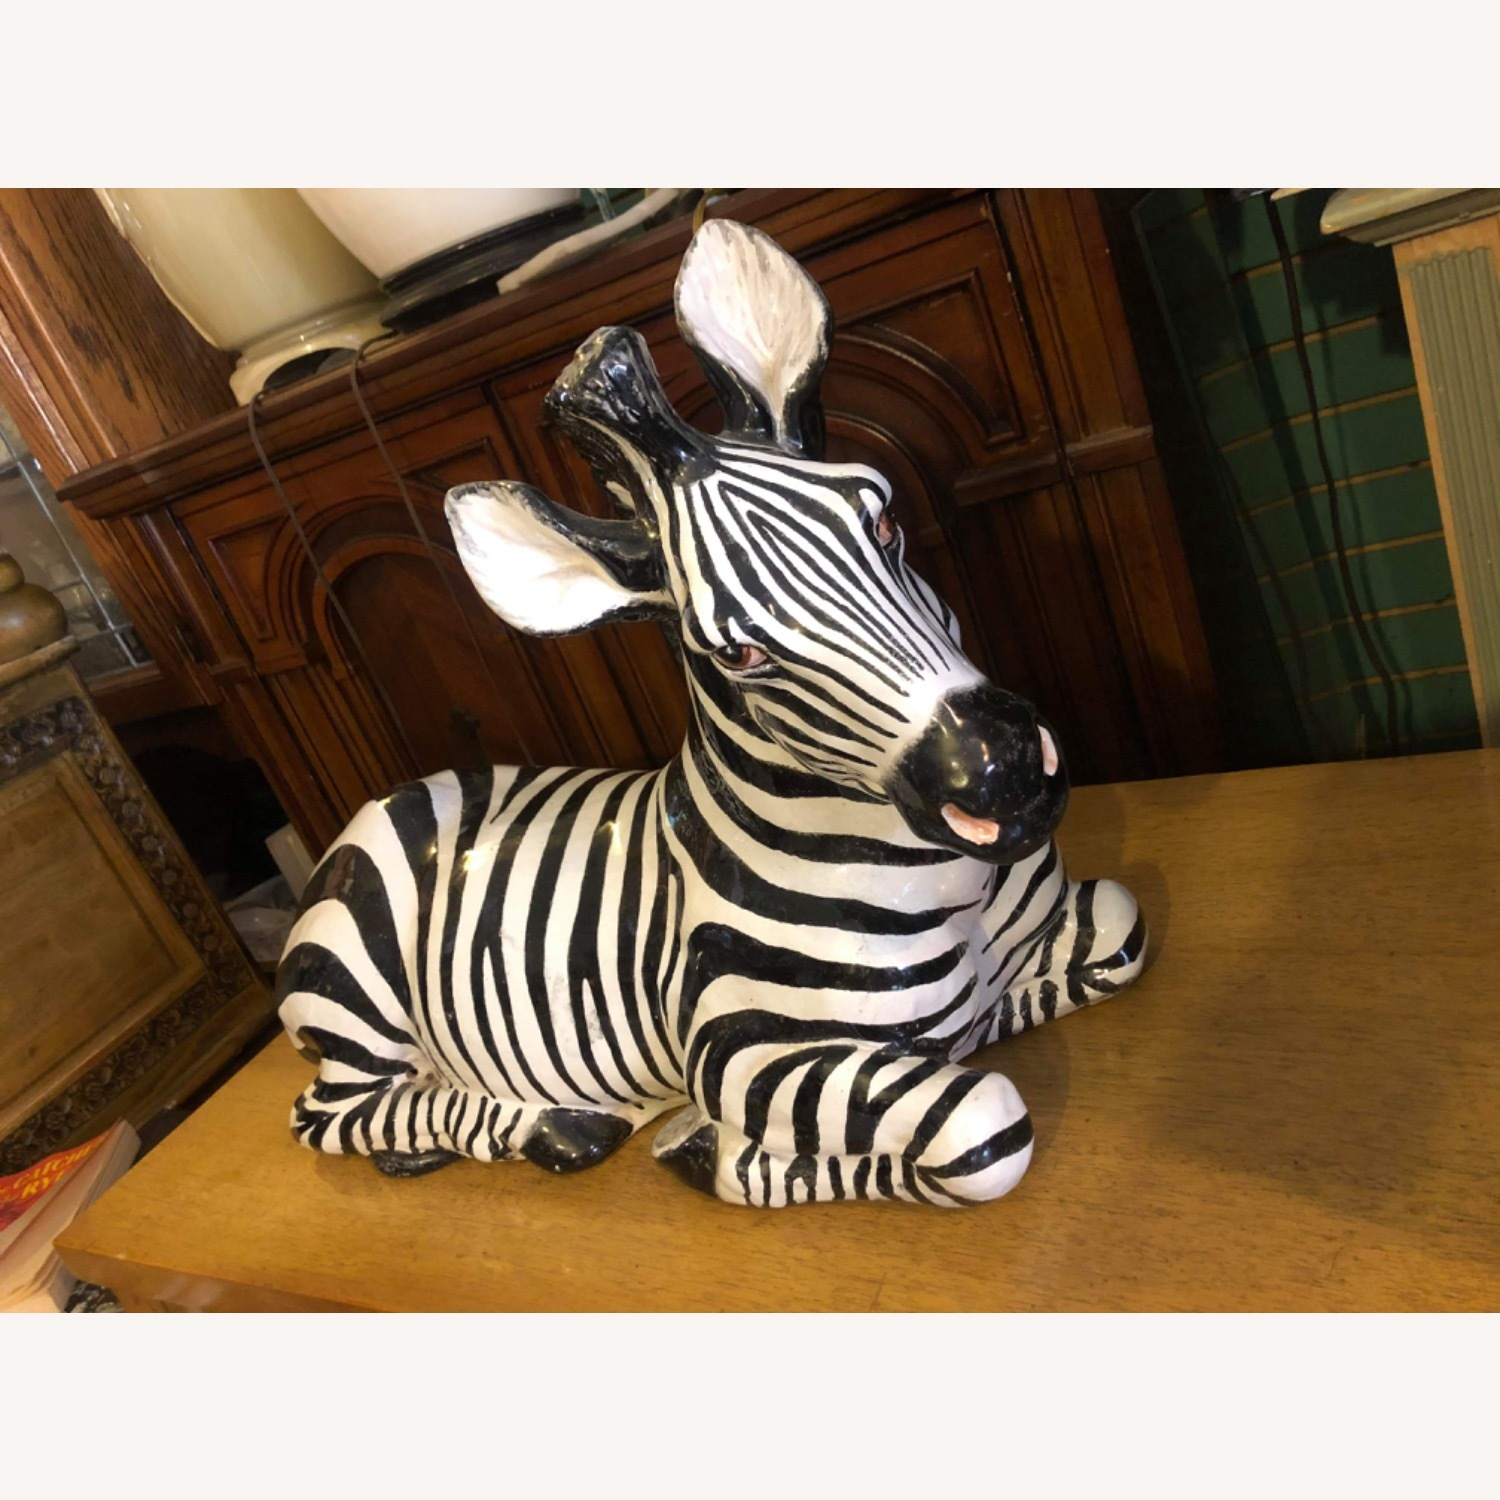 Vintage 1960s Ceramic Zebra Made in Italy - image-14